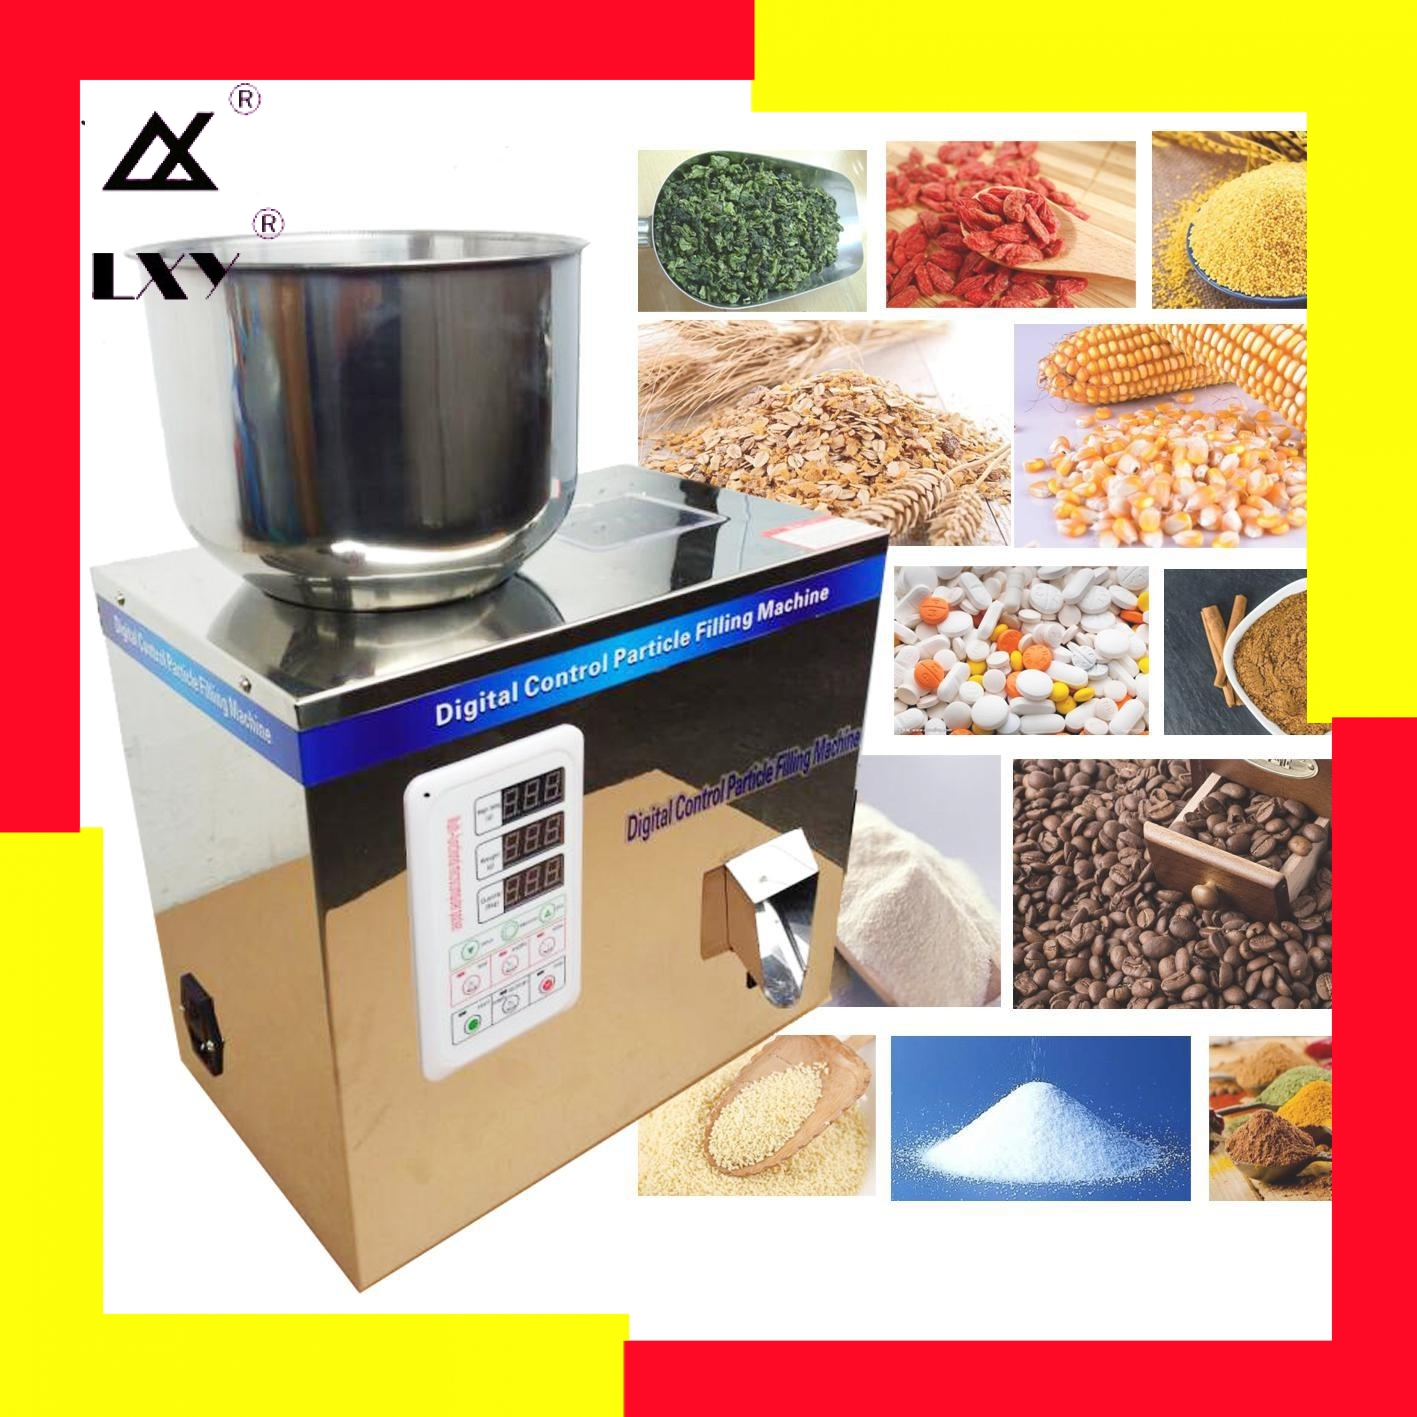 25gTea Leaf Corn Grain Medicine Seed Salt Rice Weighing And Filling Machine Niblet Sesame Racking Machine Powder Capsules Filler